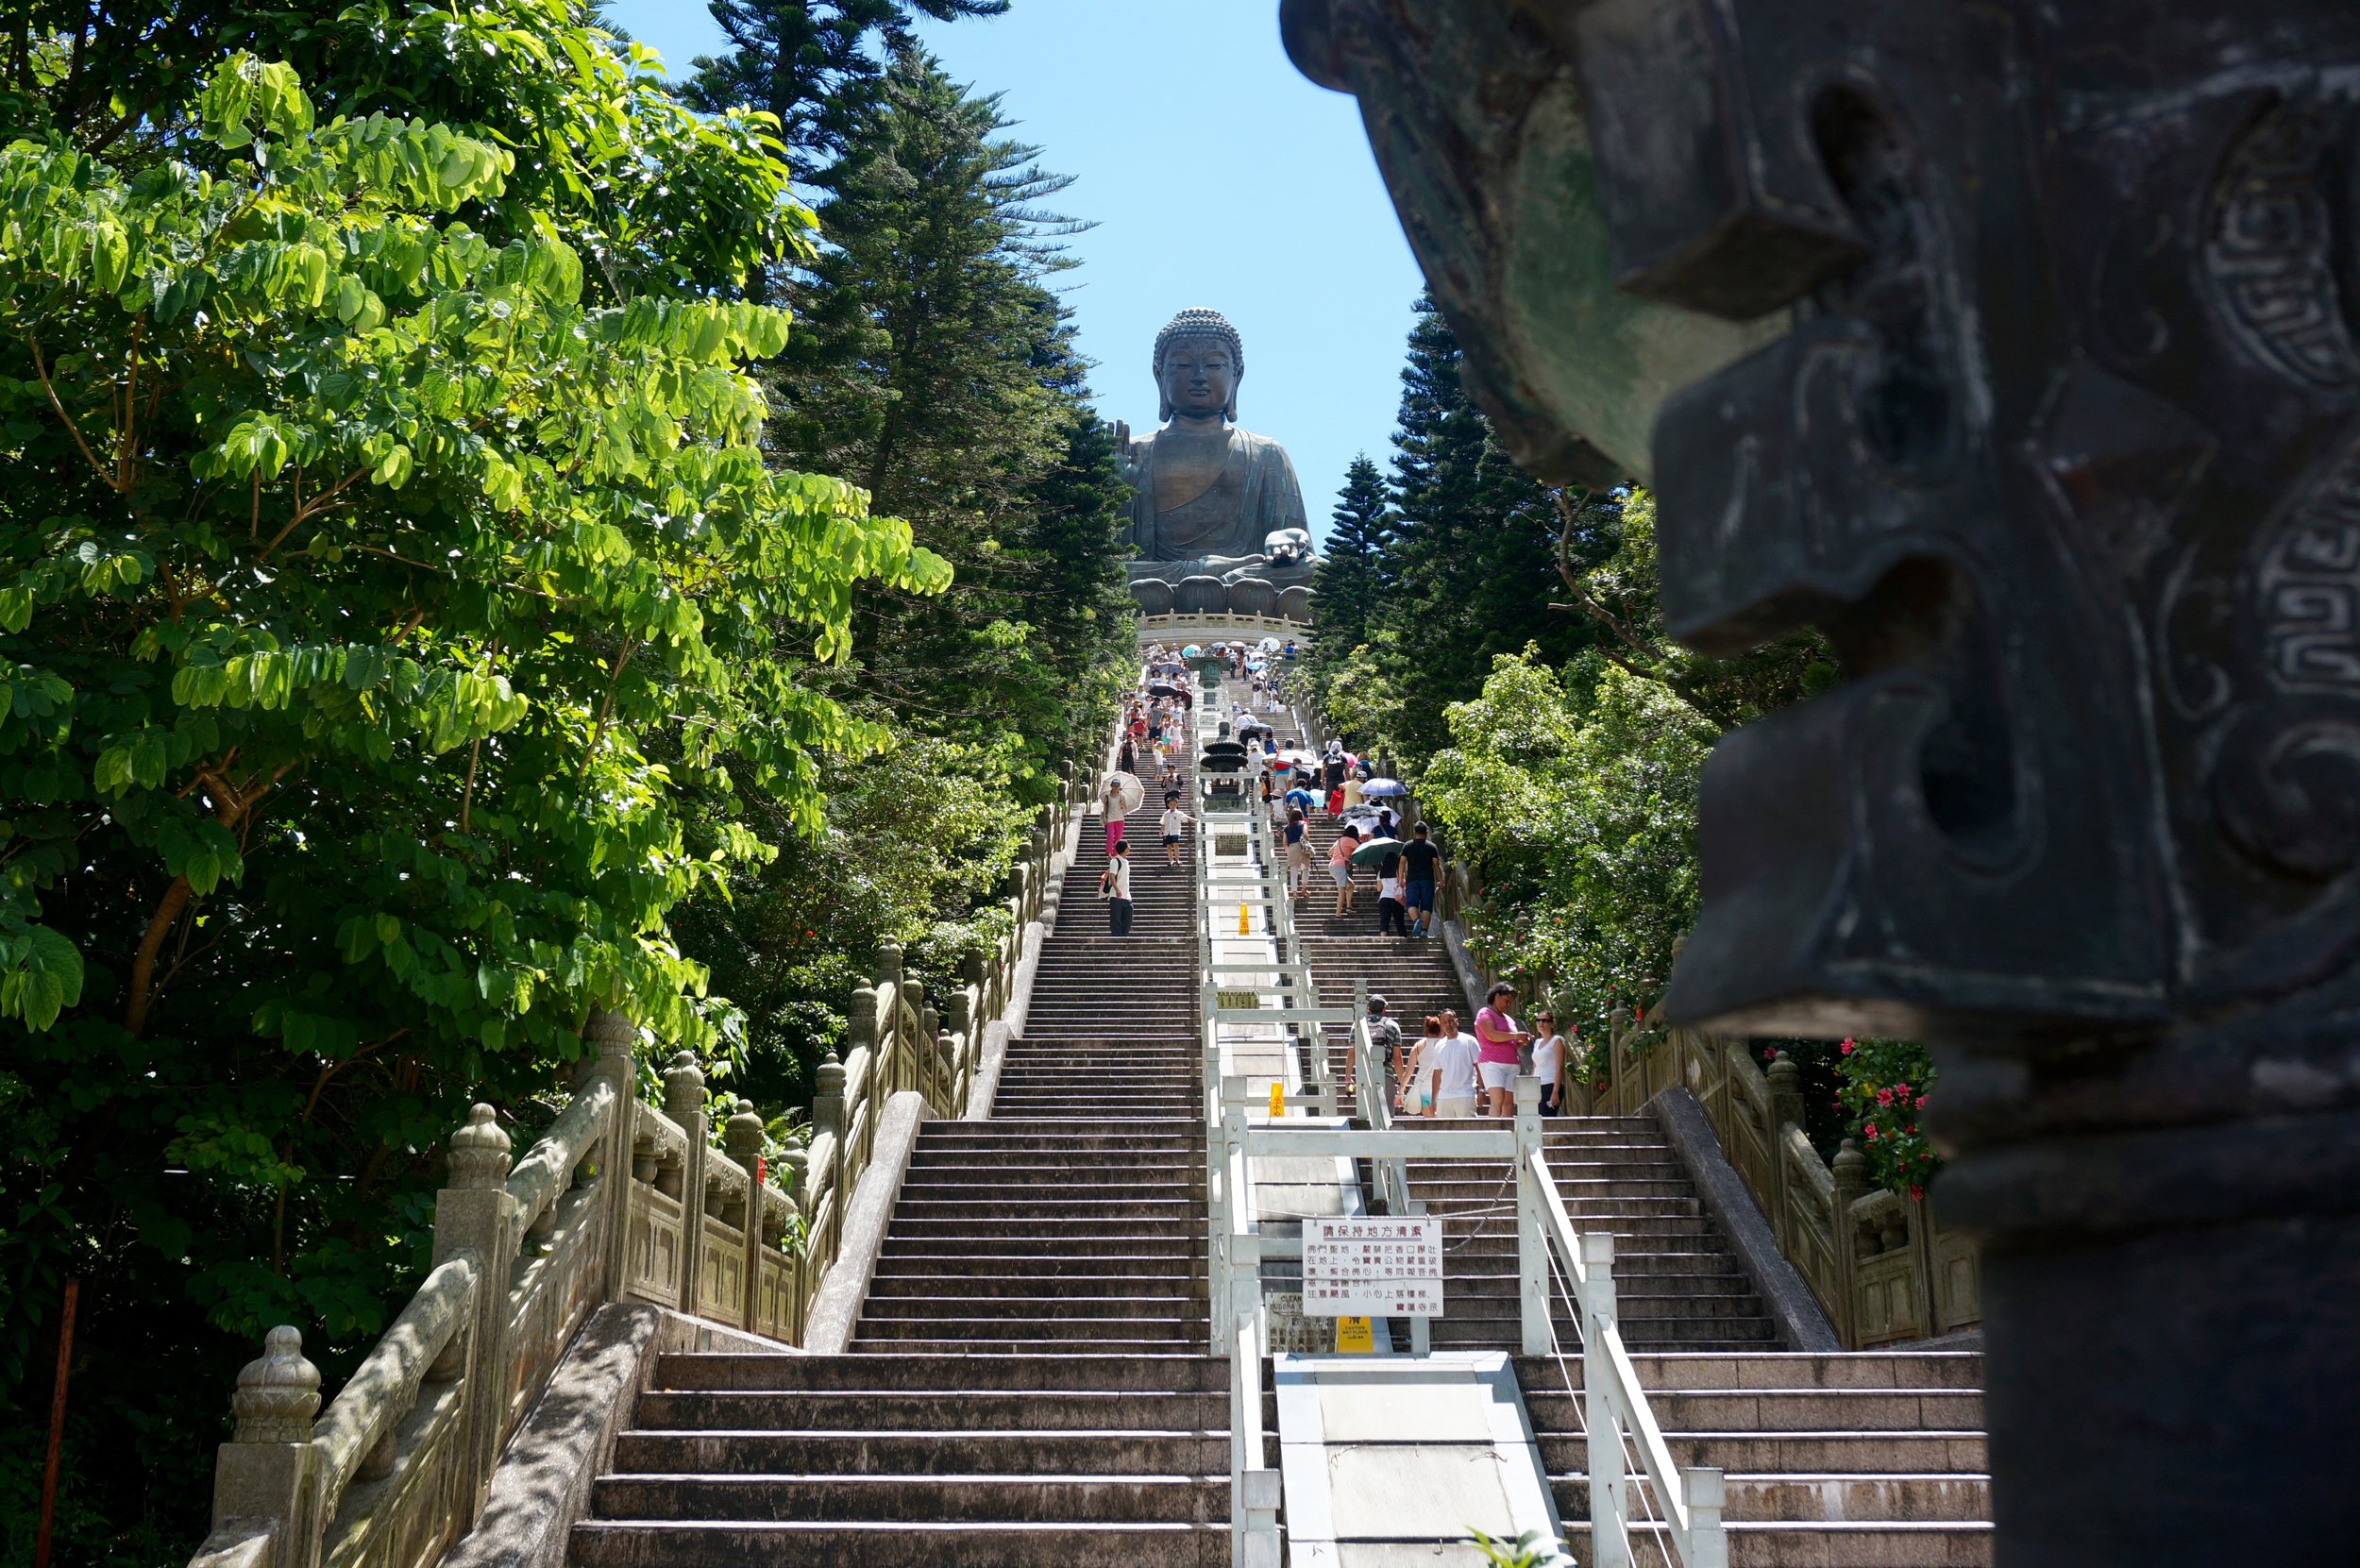 Steps up to the Tian Tan Buddha